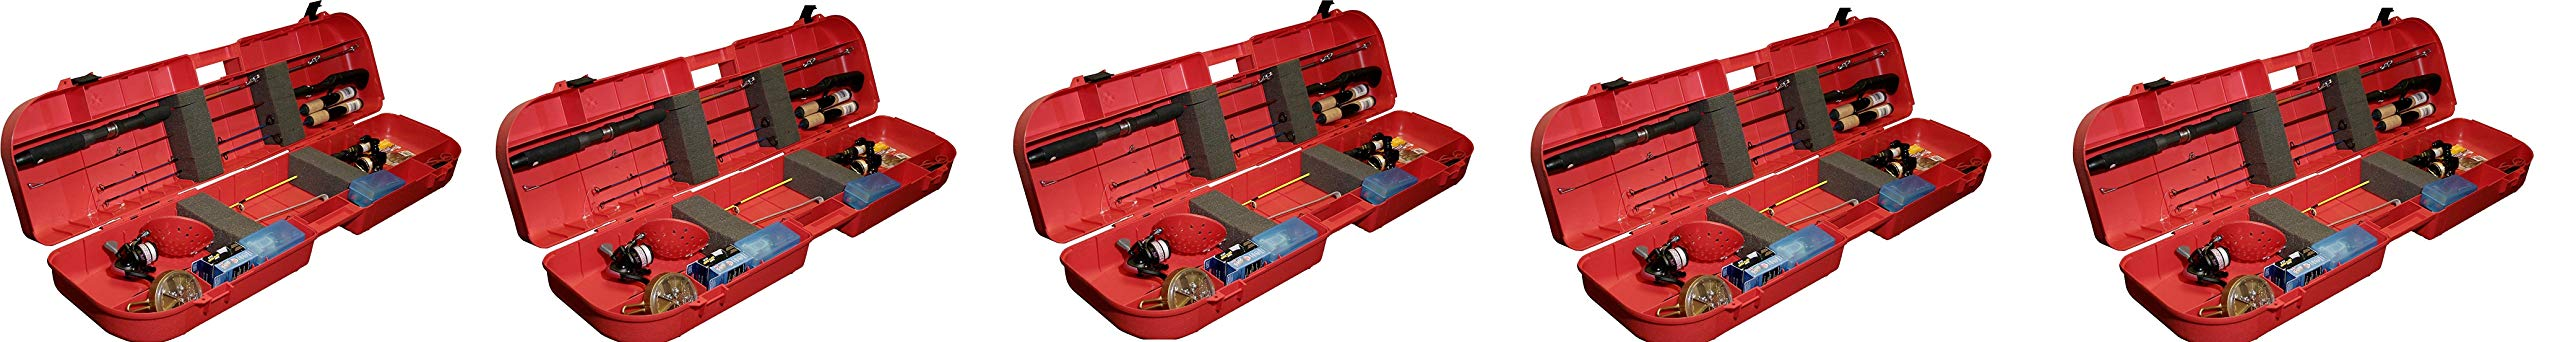 MTM Ice Fishing Rod Box (Red) (Pack of 5)